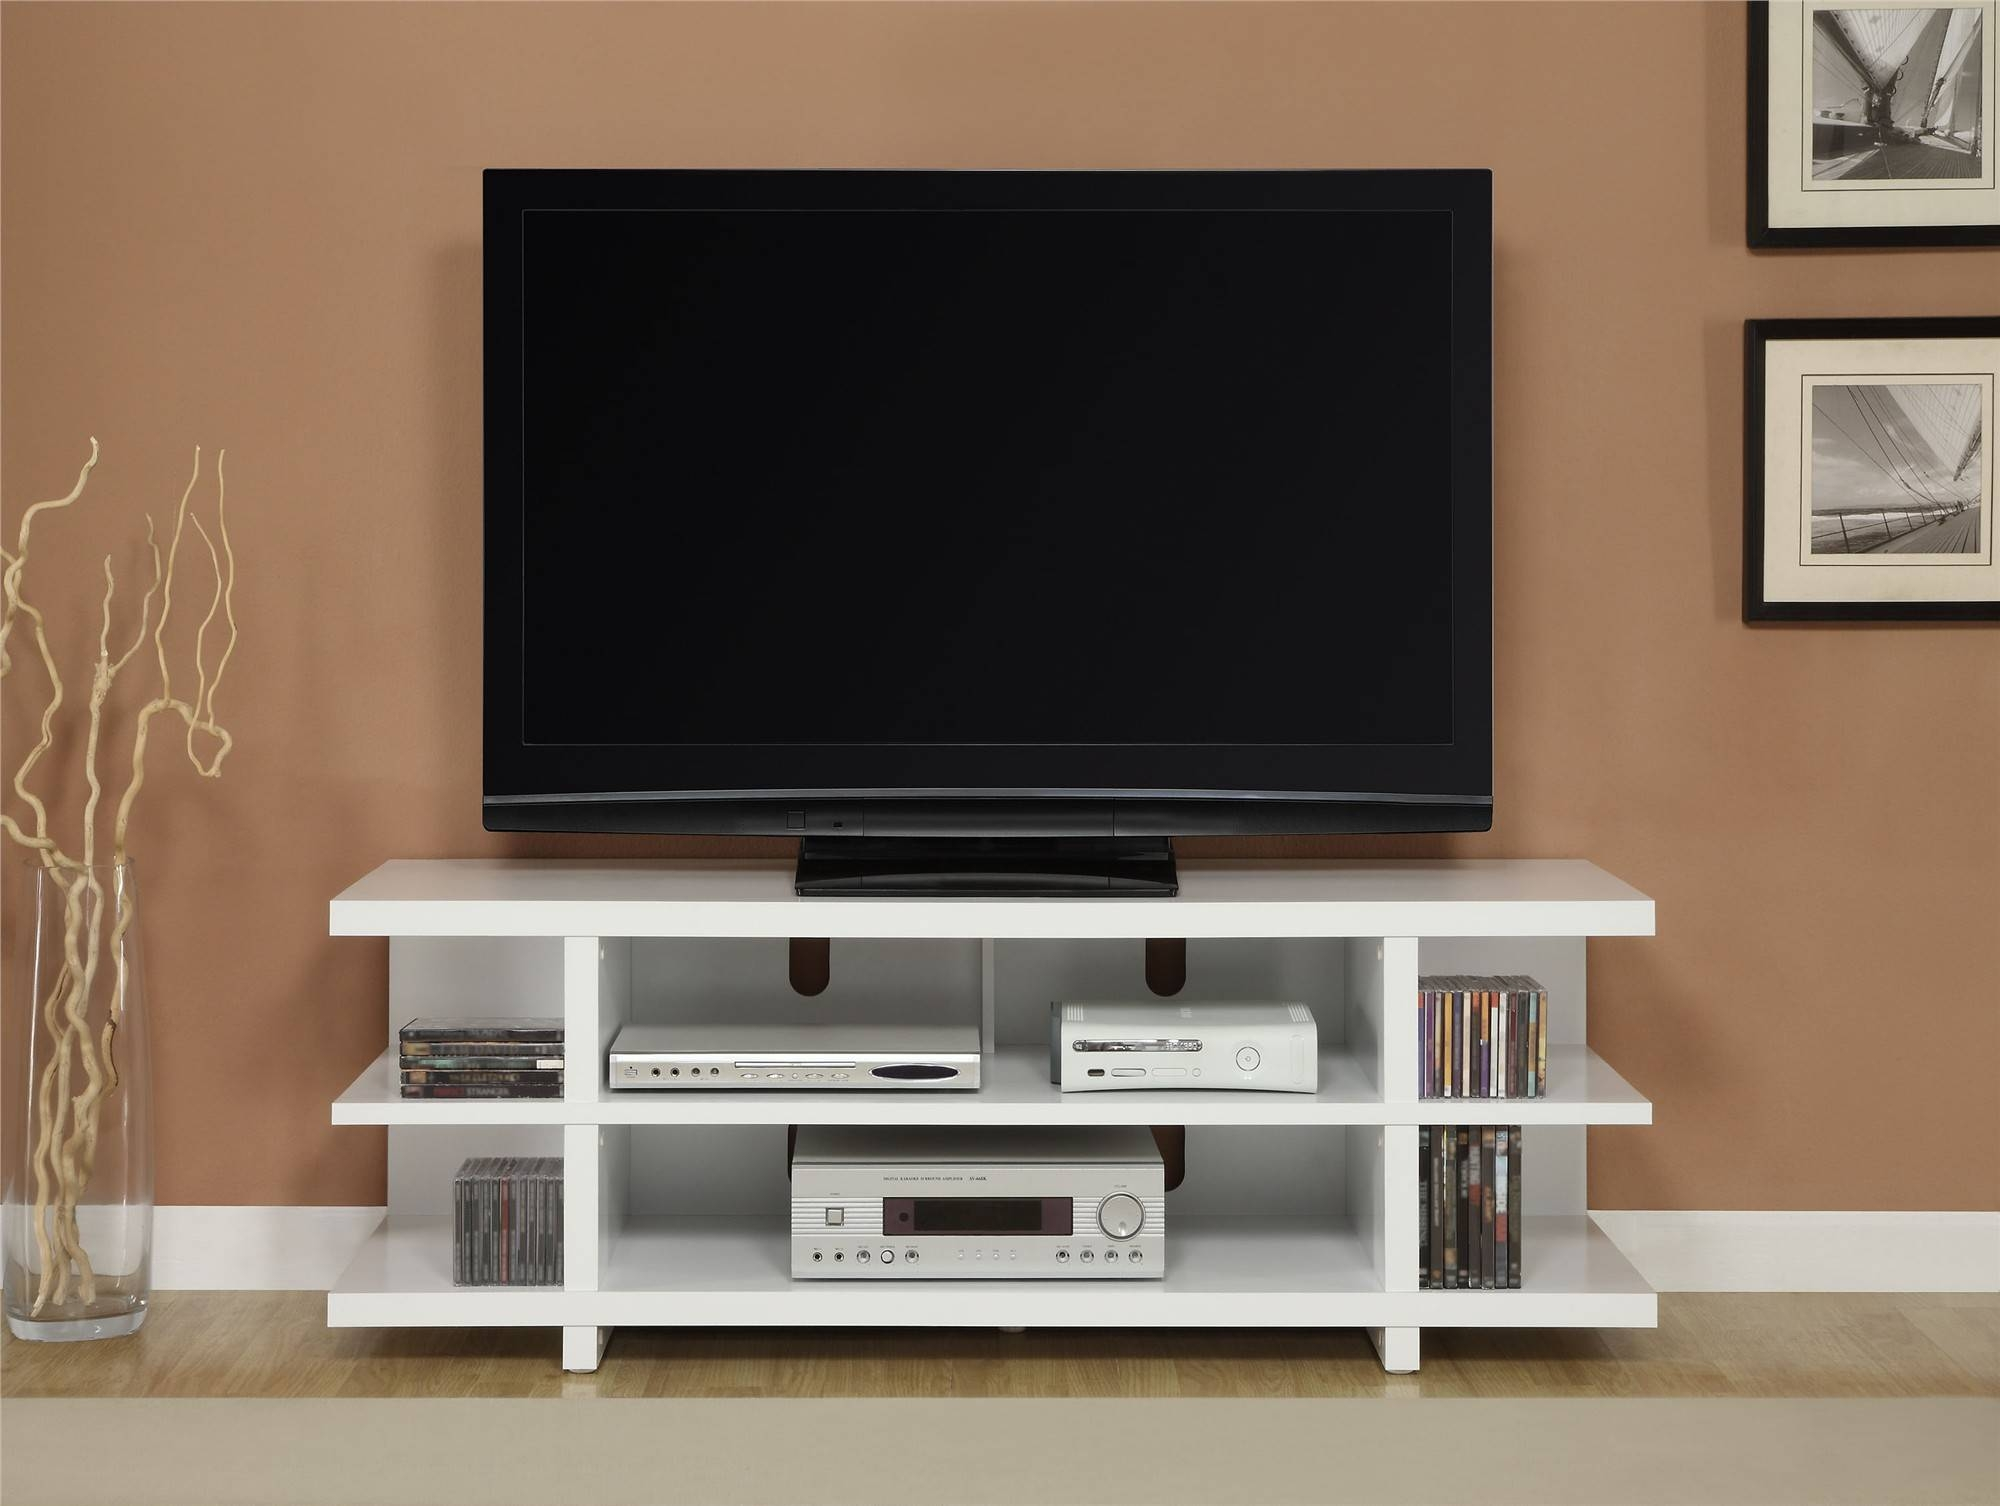 White Stained Wooden Tv Stand Having Several Open Shelves For In Contemporary Cabinets Flat